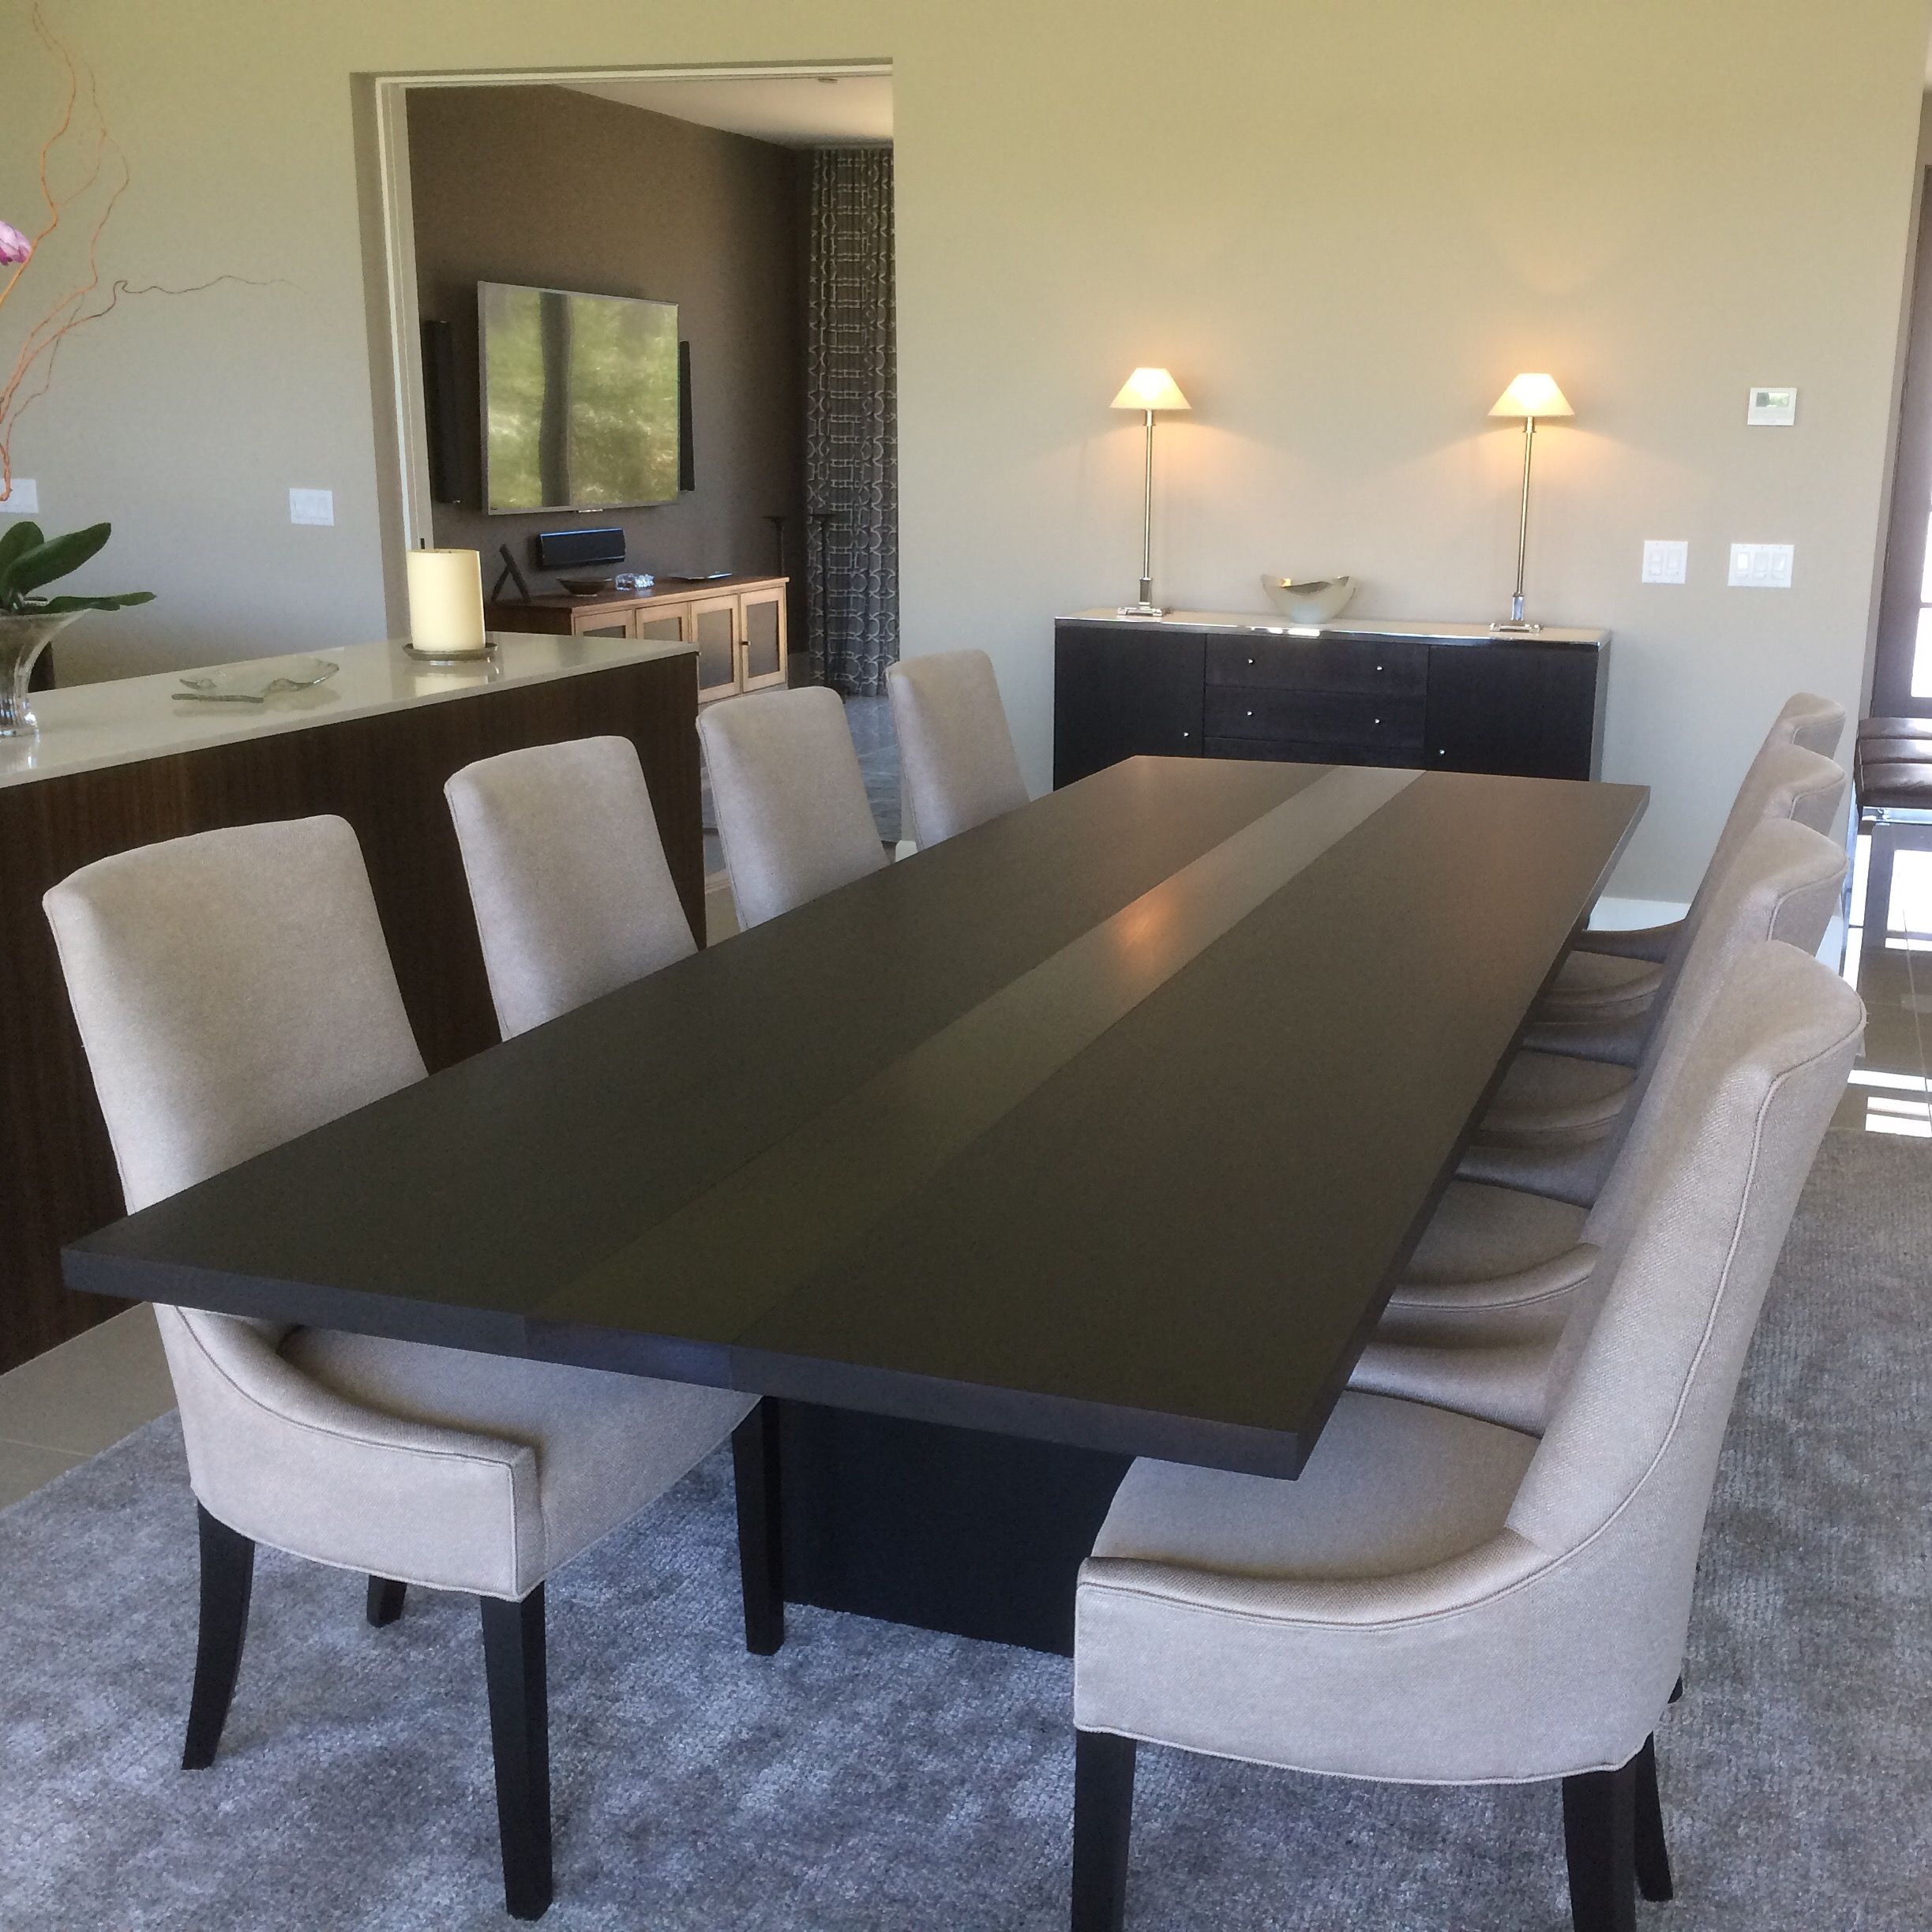 Modern Dining Tables | Contemporary Dining Room Tables | CustomMade.com